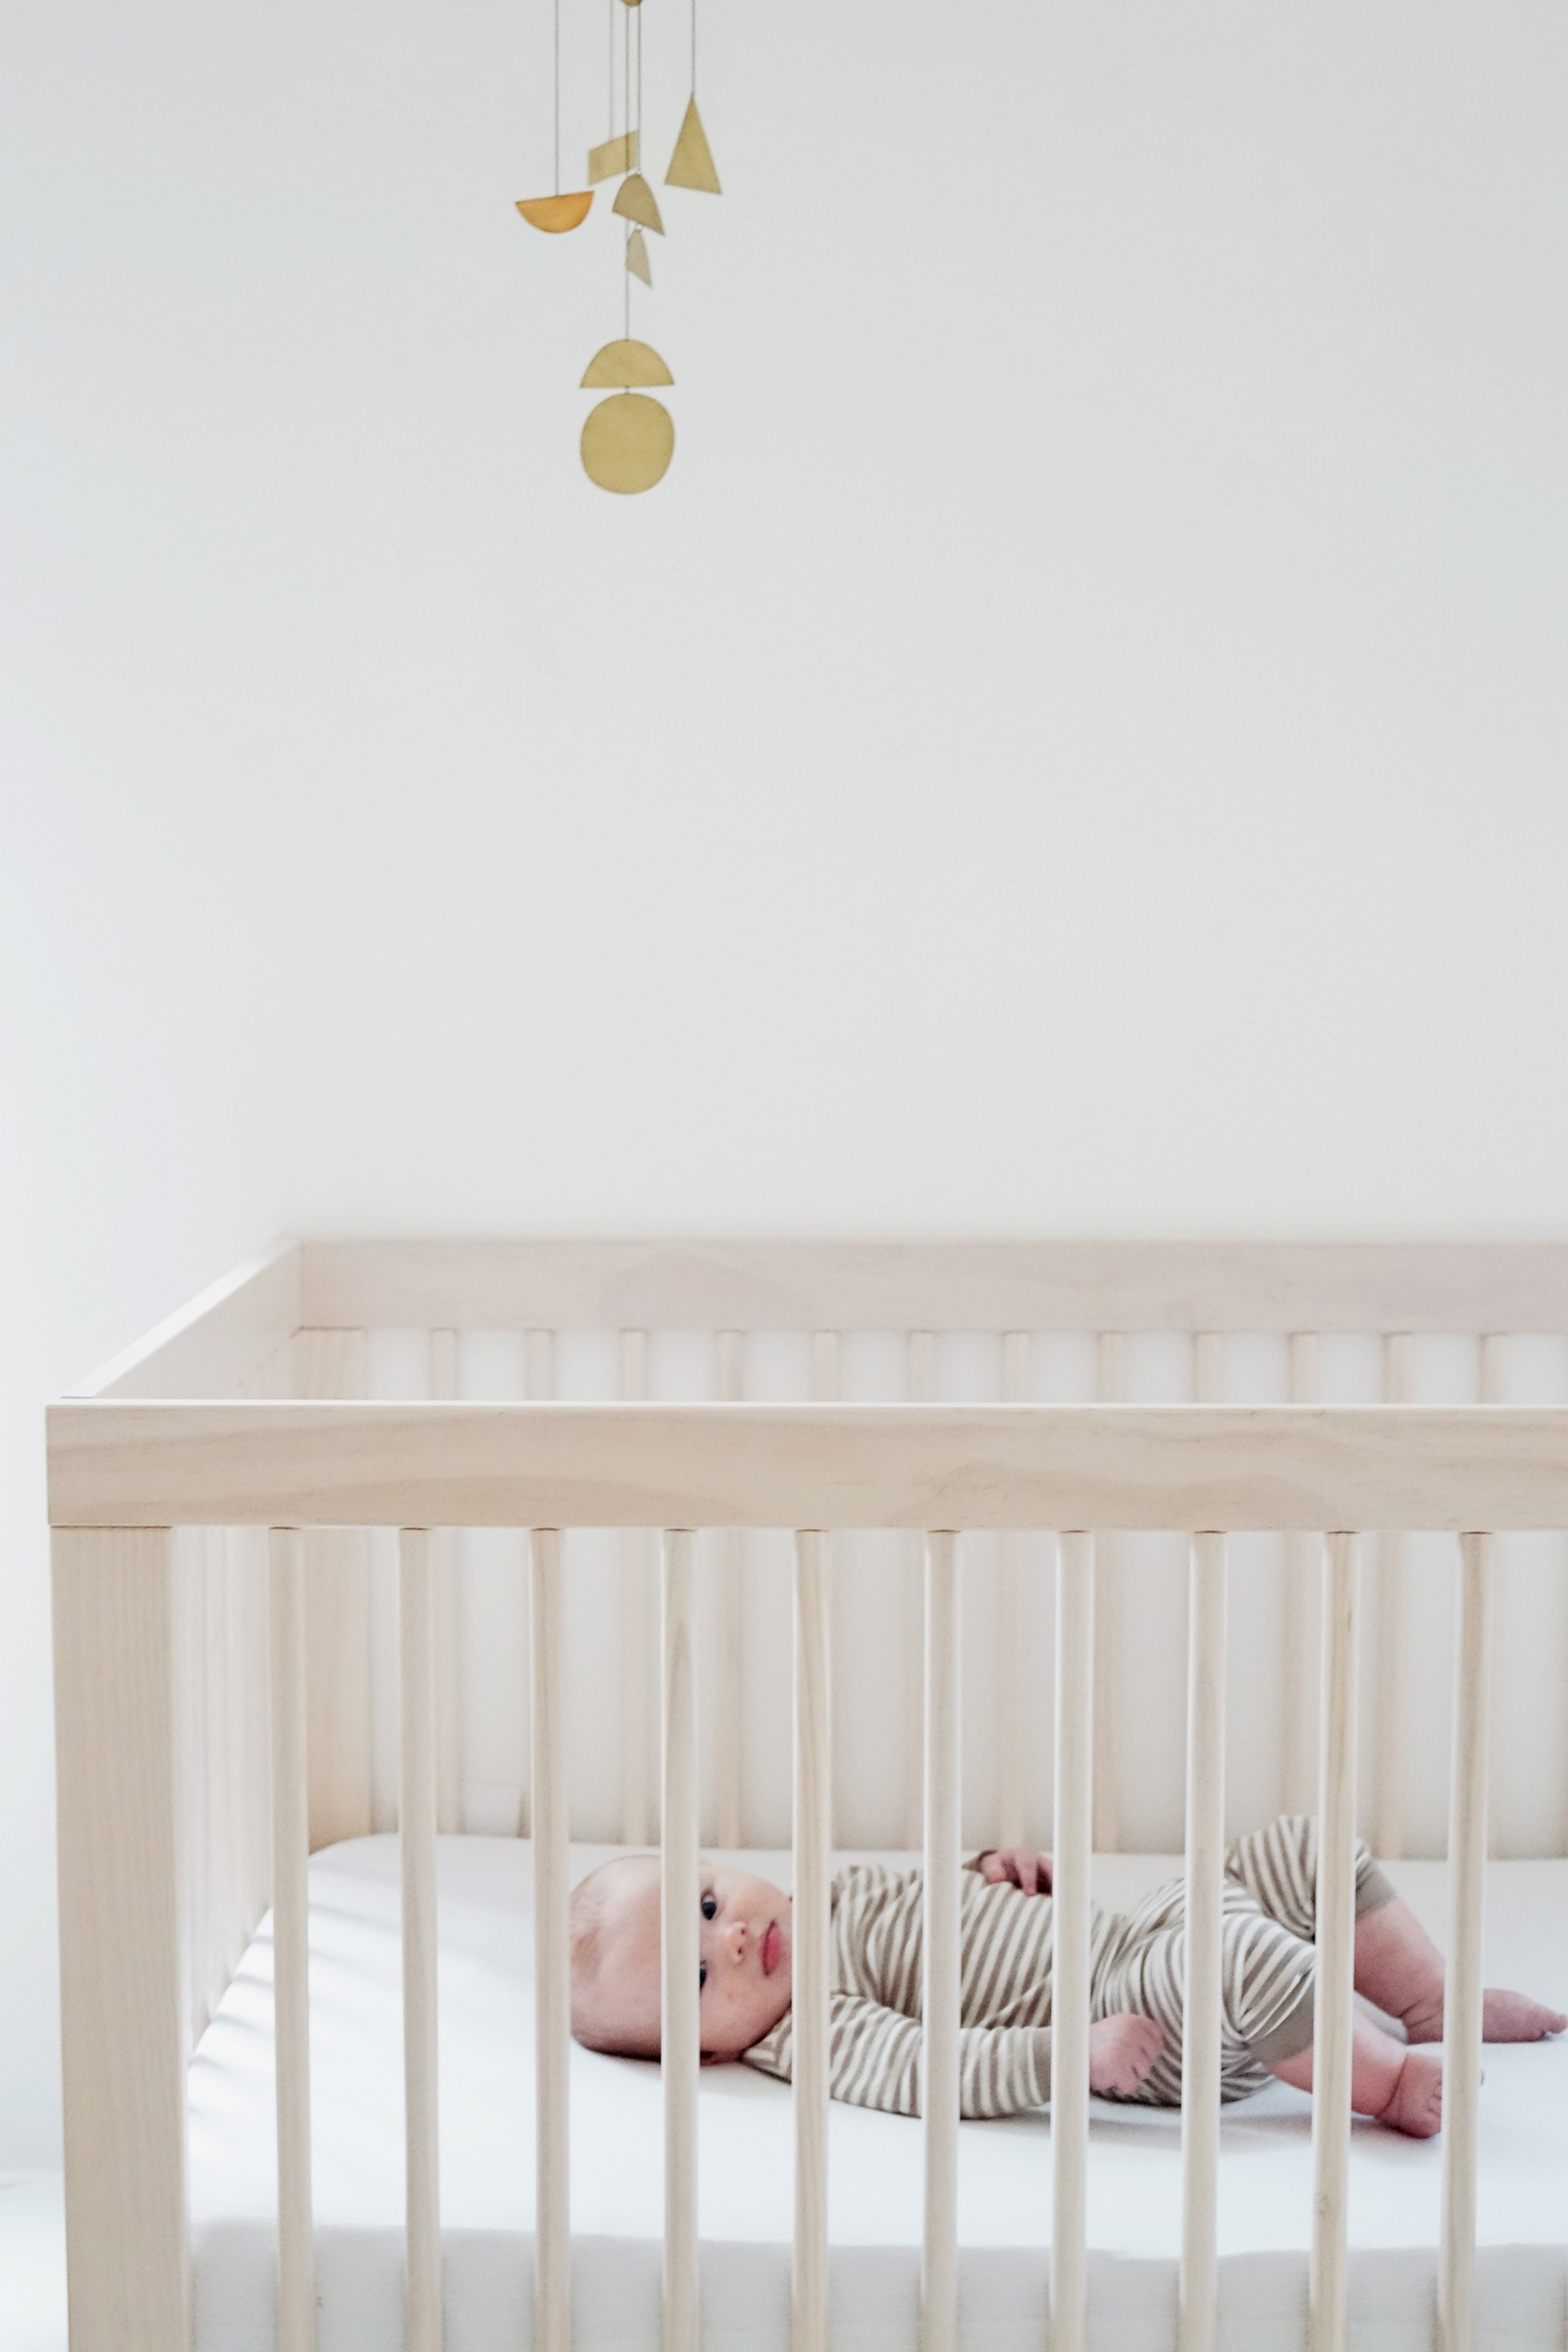 sleep training our 6 month old - almost makes perfect e543ddd27df